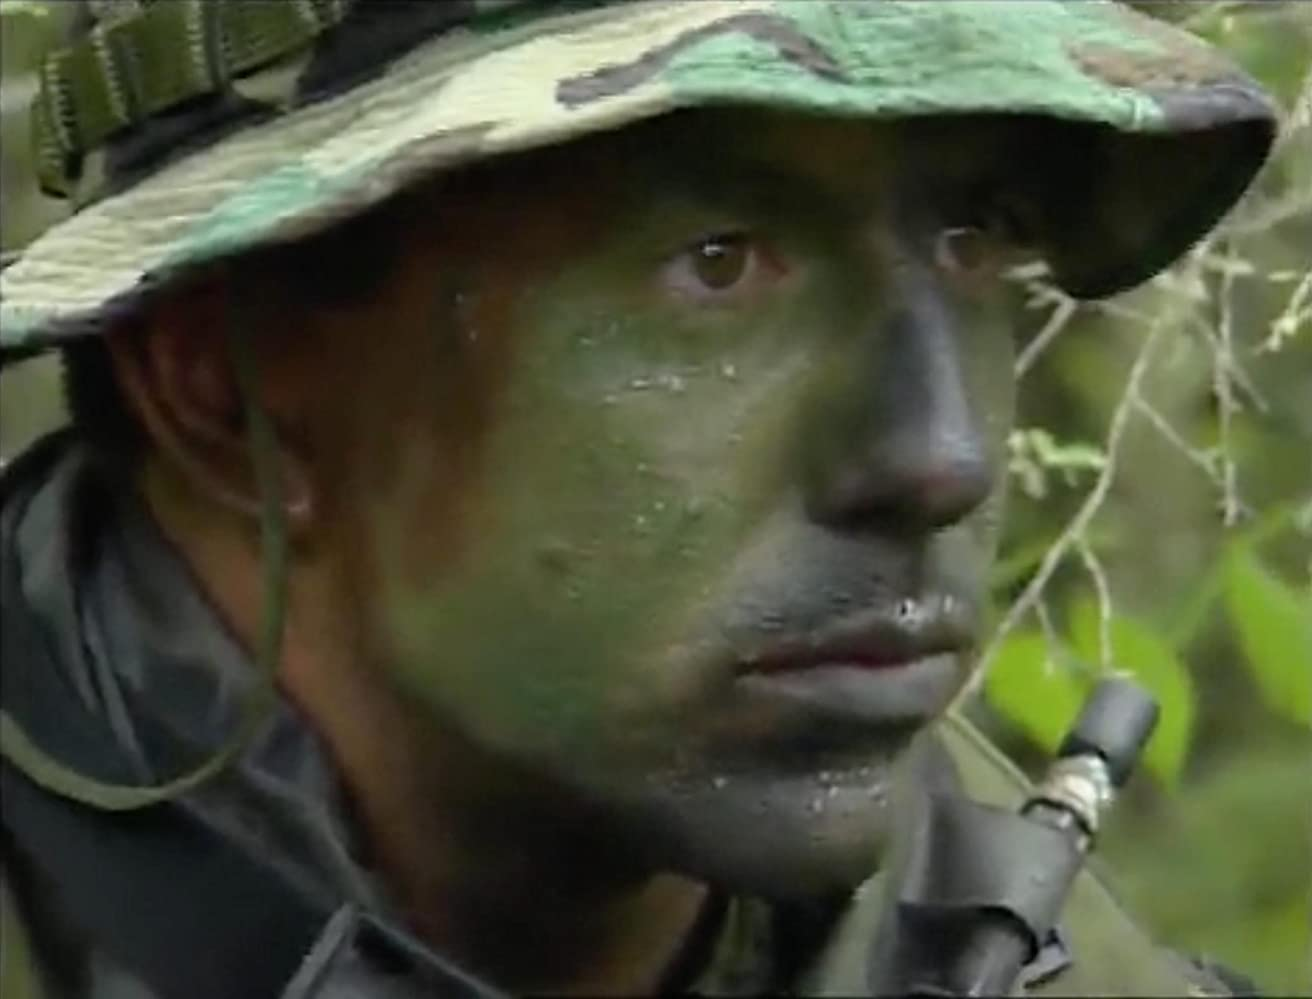 Special Operations Force: America's Secret Soldiers (2002)